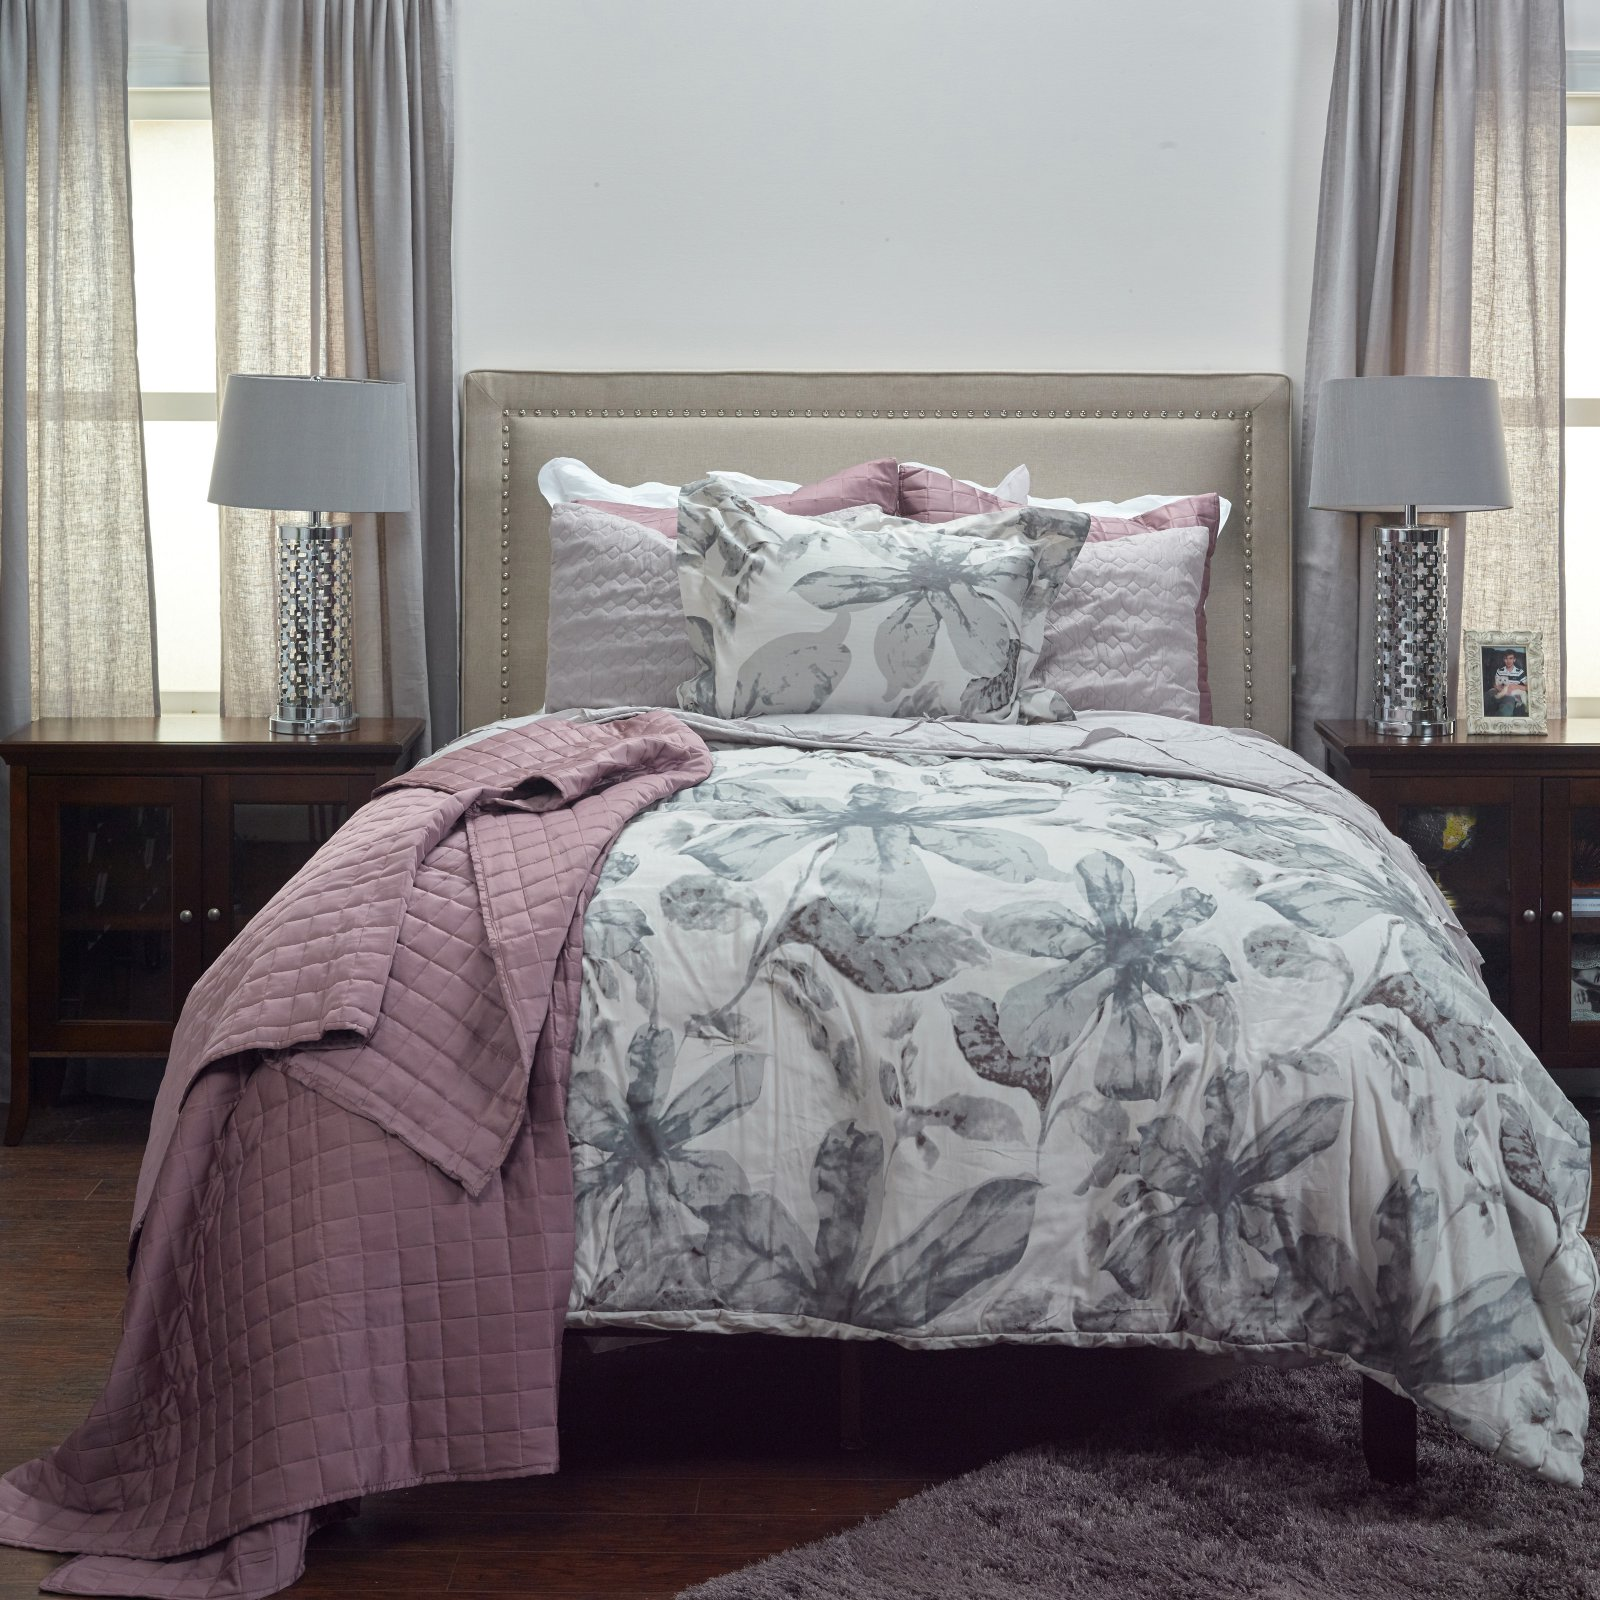 3-Pc Comforter Set in Teal (Queen)